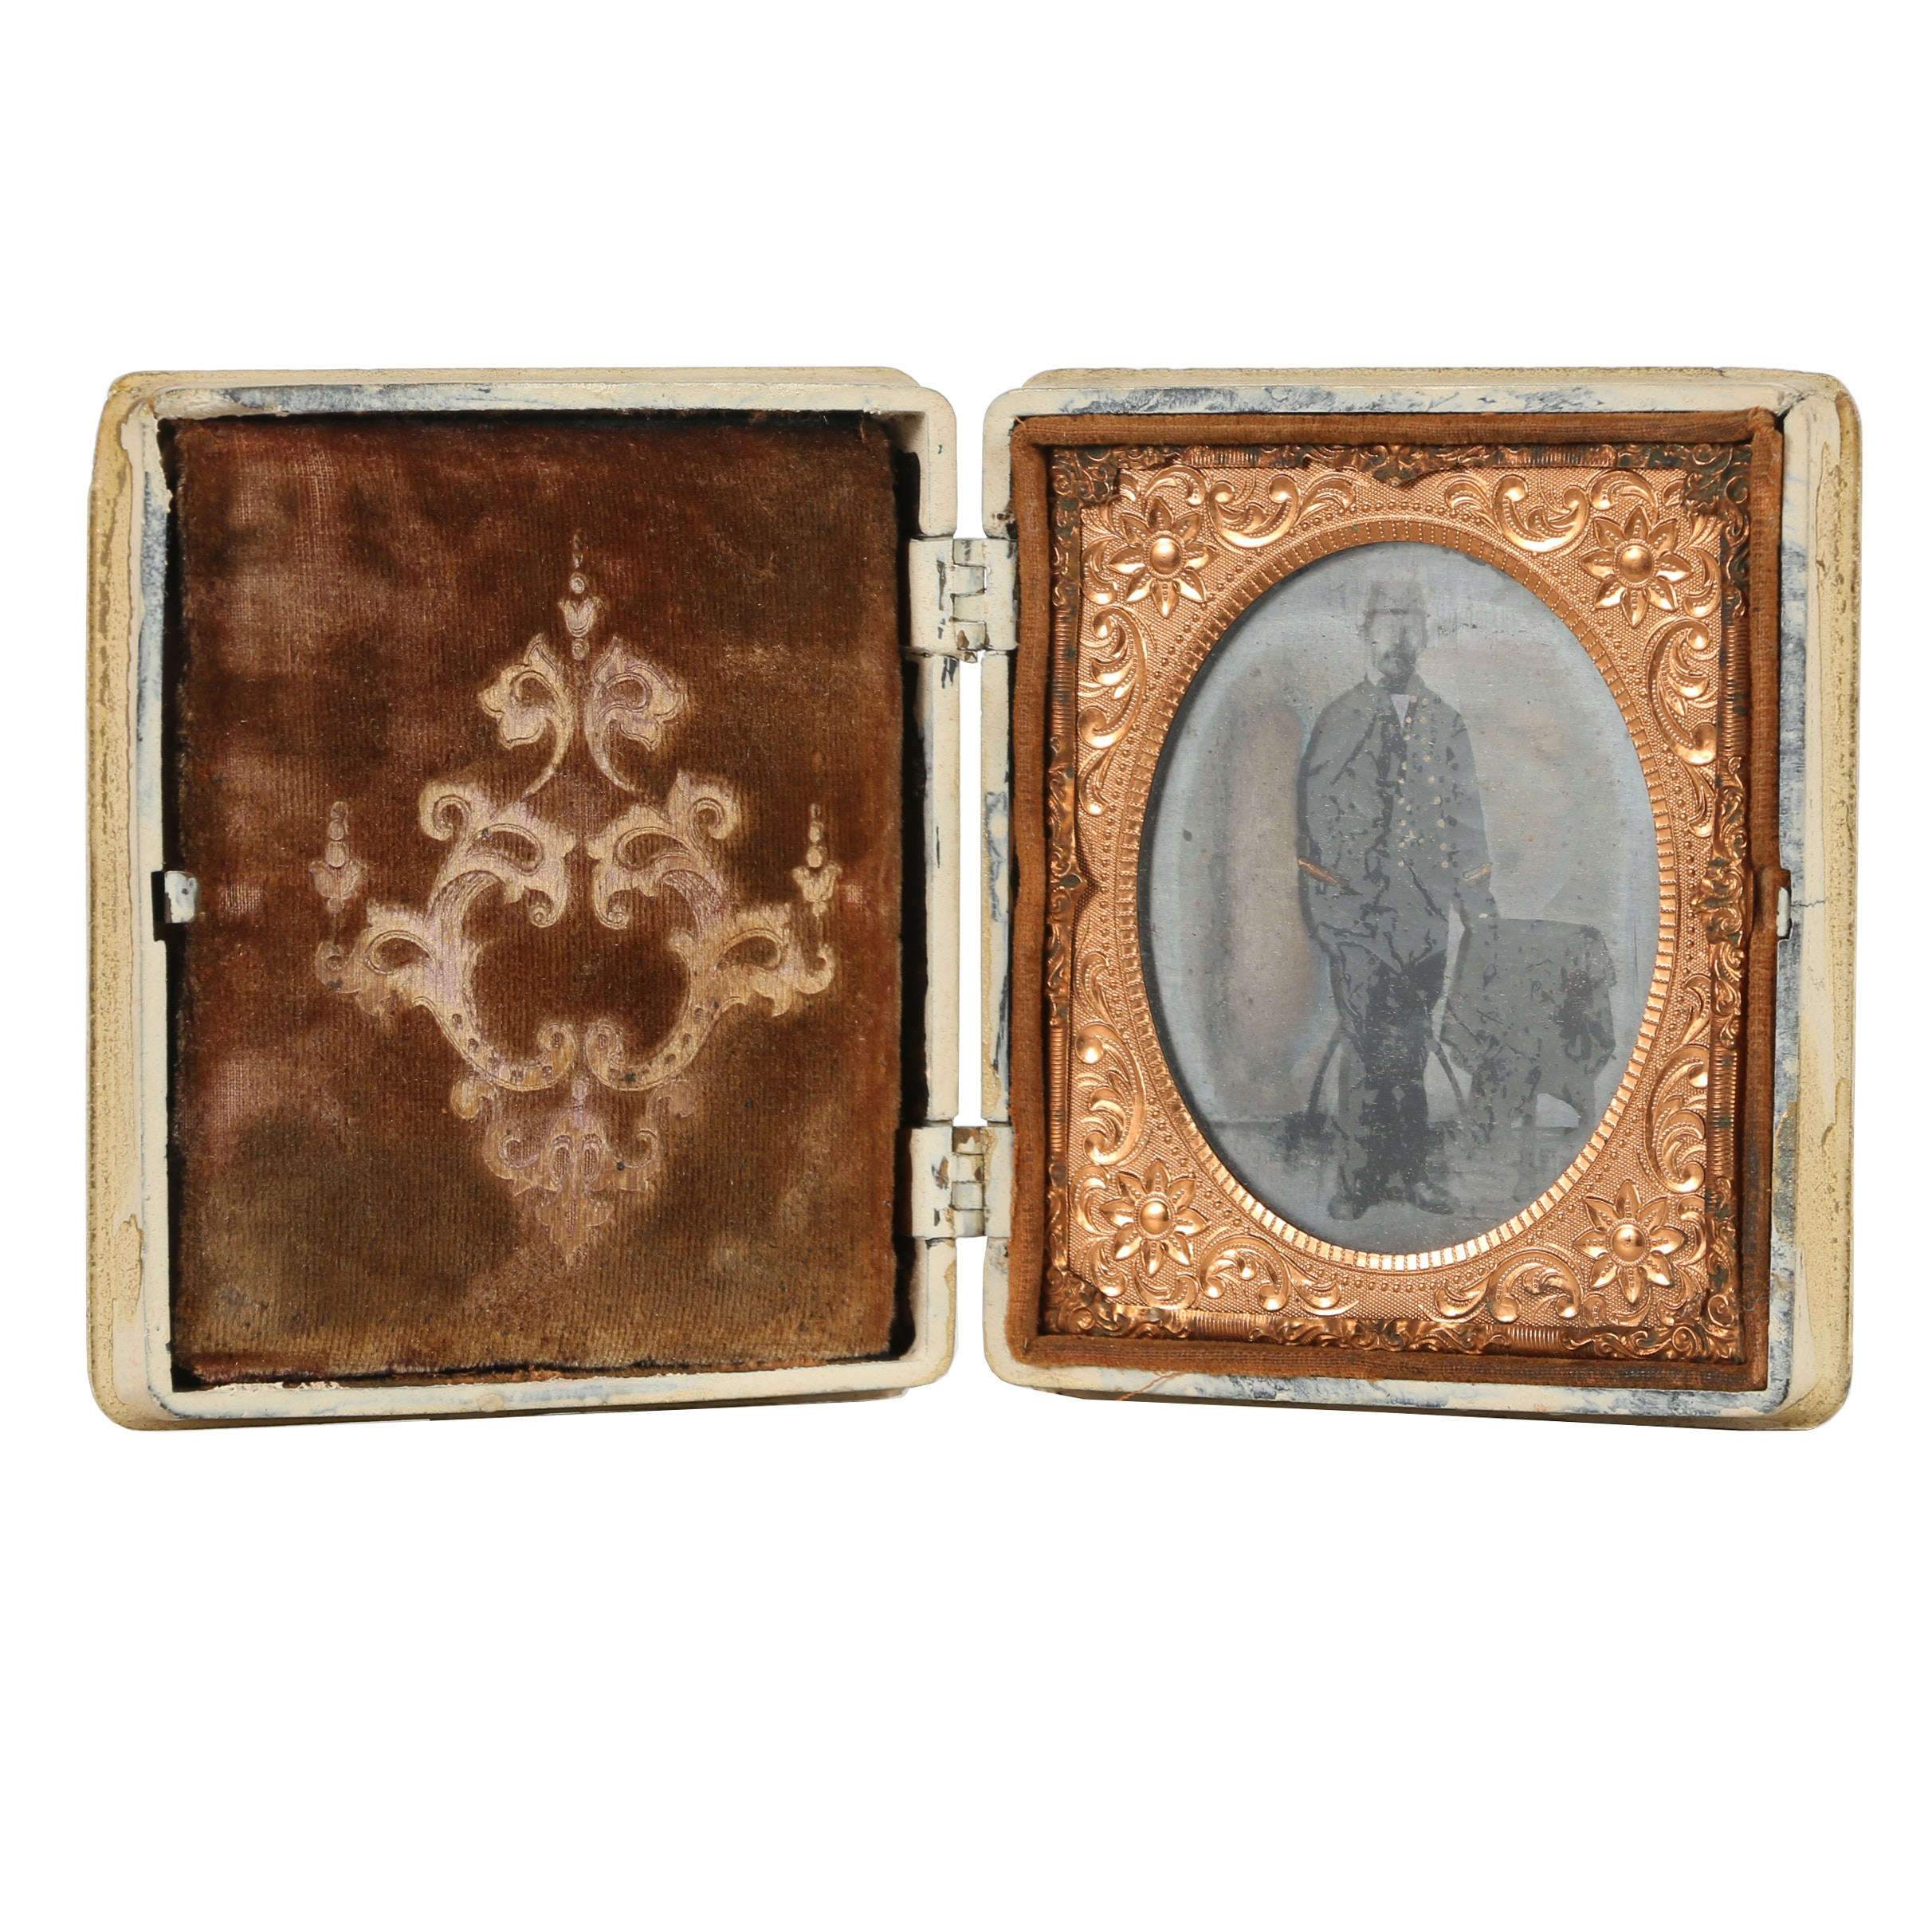 Antique Ambrotype of Civil War Soldier in Wood Case